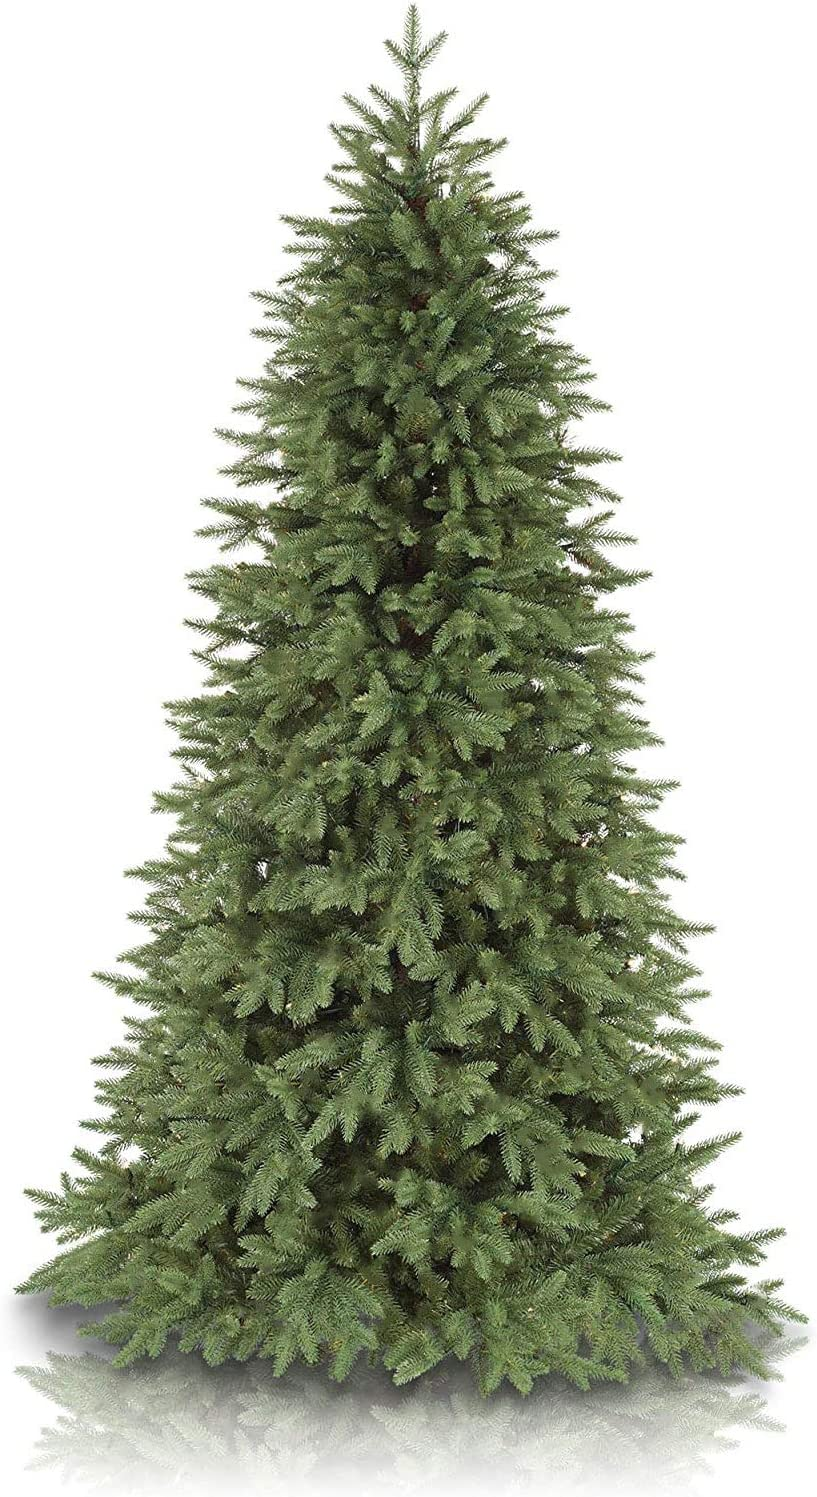 Balsam Hill 7.5ft Premium Unlit Artificial Christmas Tree Stratford Spruce with Storage Bag, and Fluffing Gloves